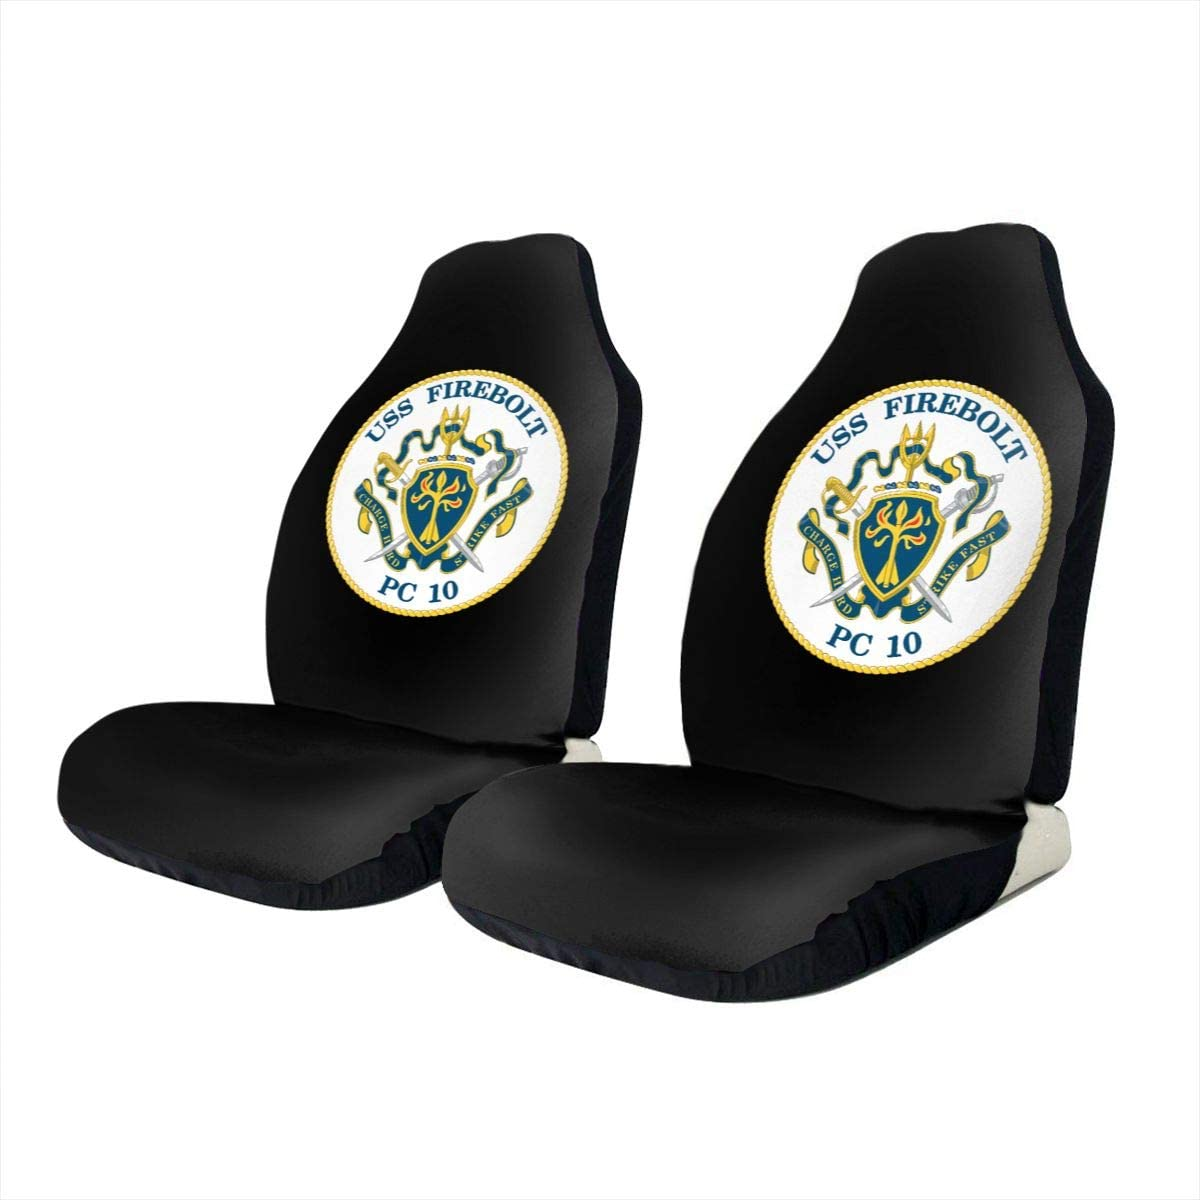 KEEDCE&FJE Navy USS Firebolt PC-10 Universal Car Seat Cover Car Seat Covers Protector for Automobile Truck SUV Vehicle